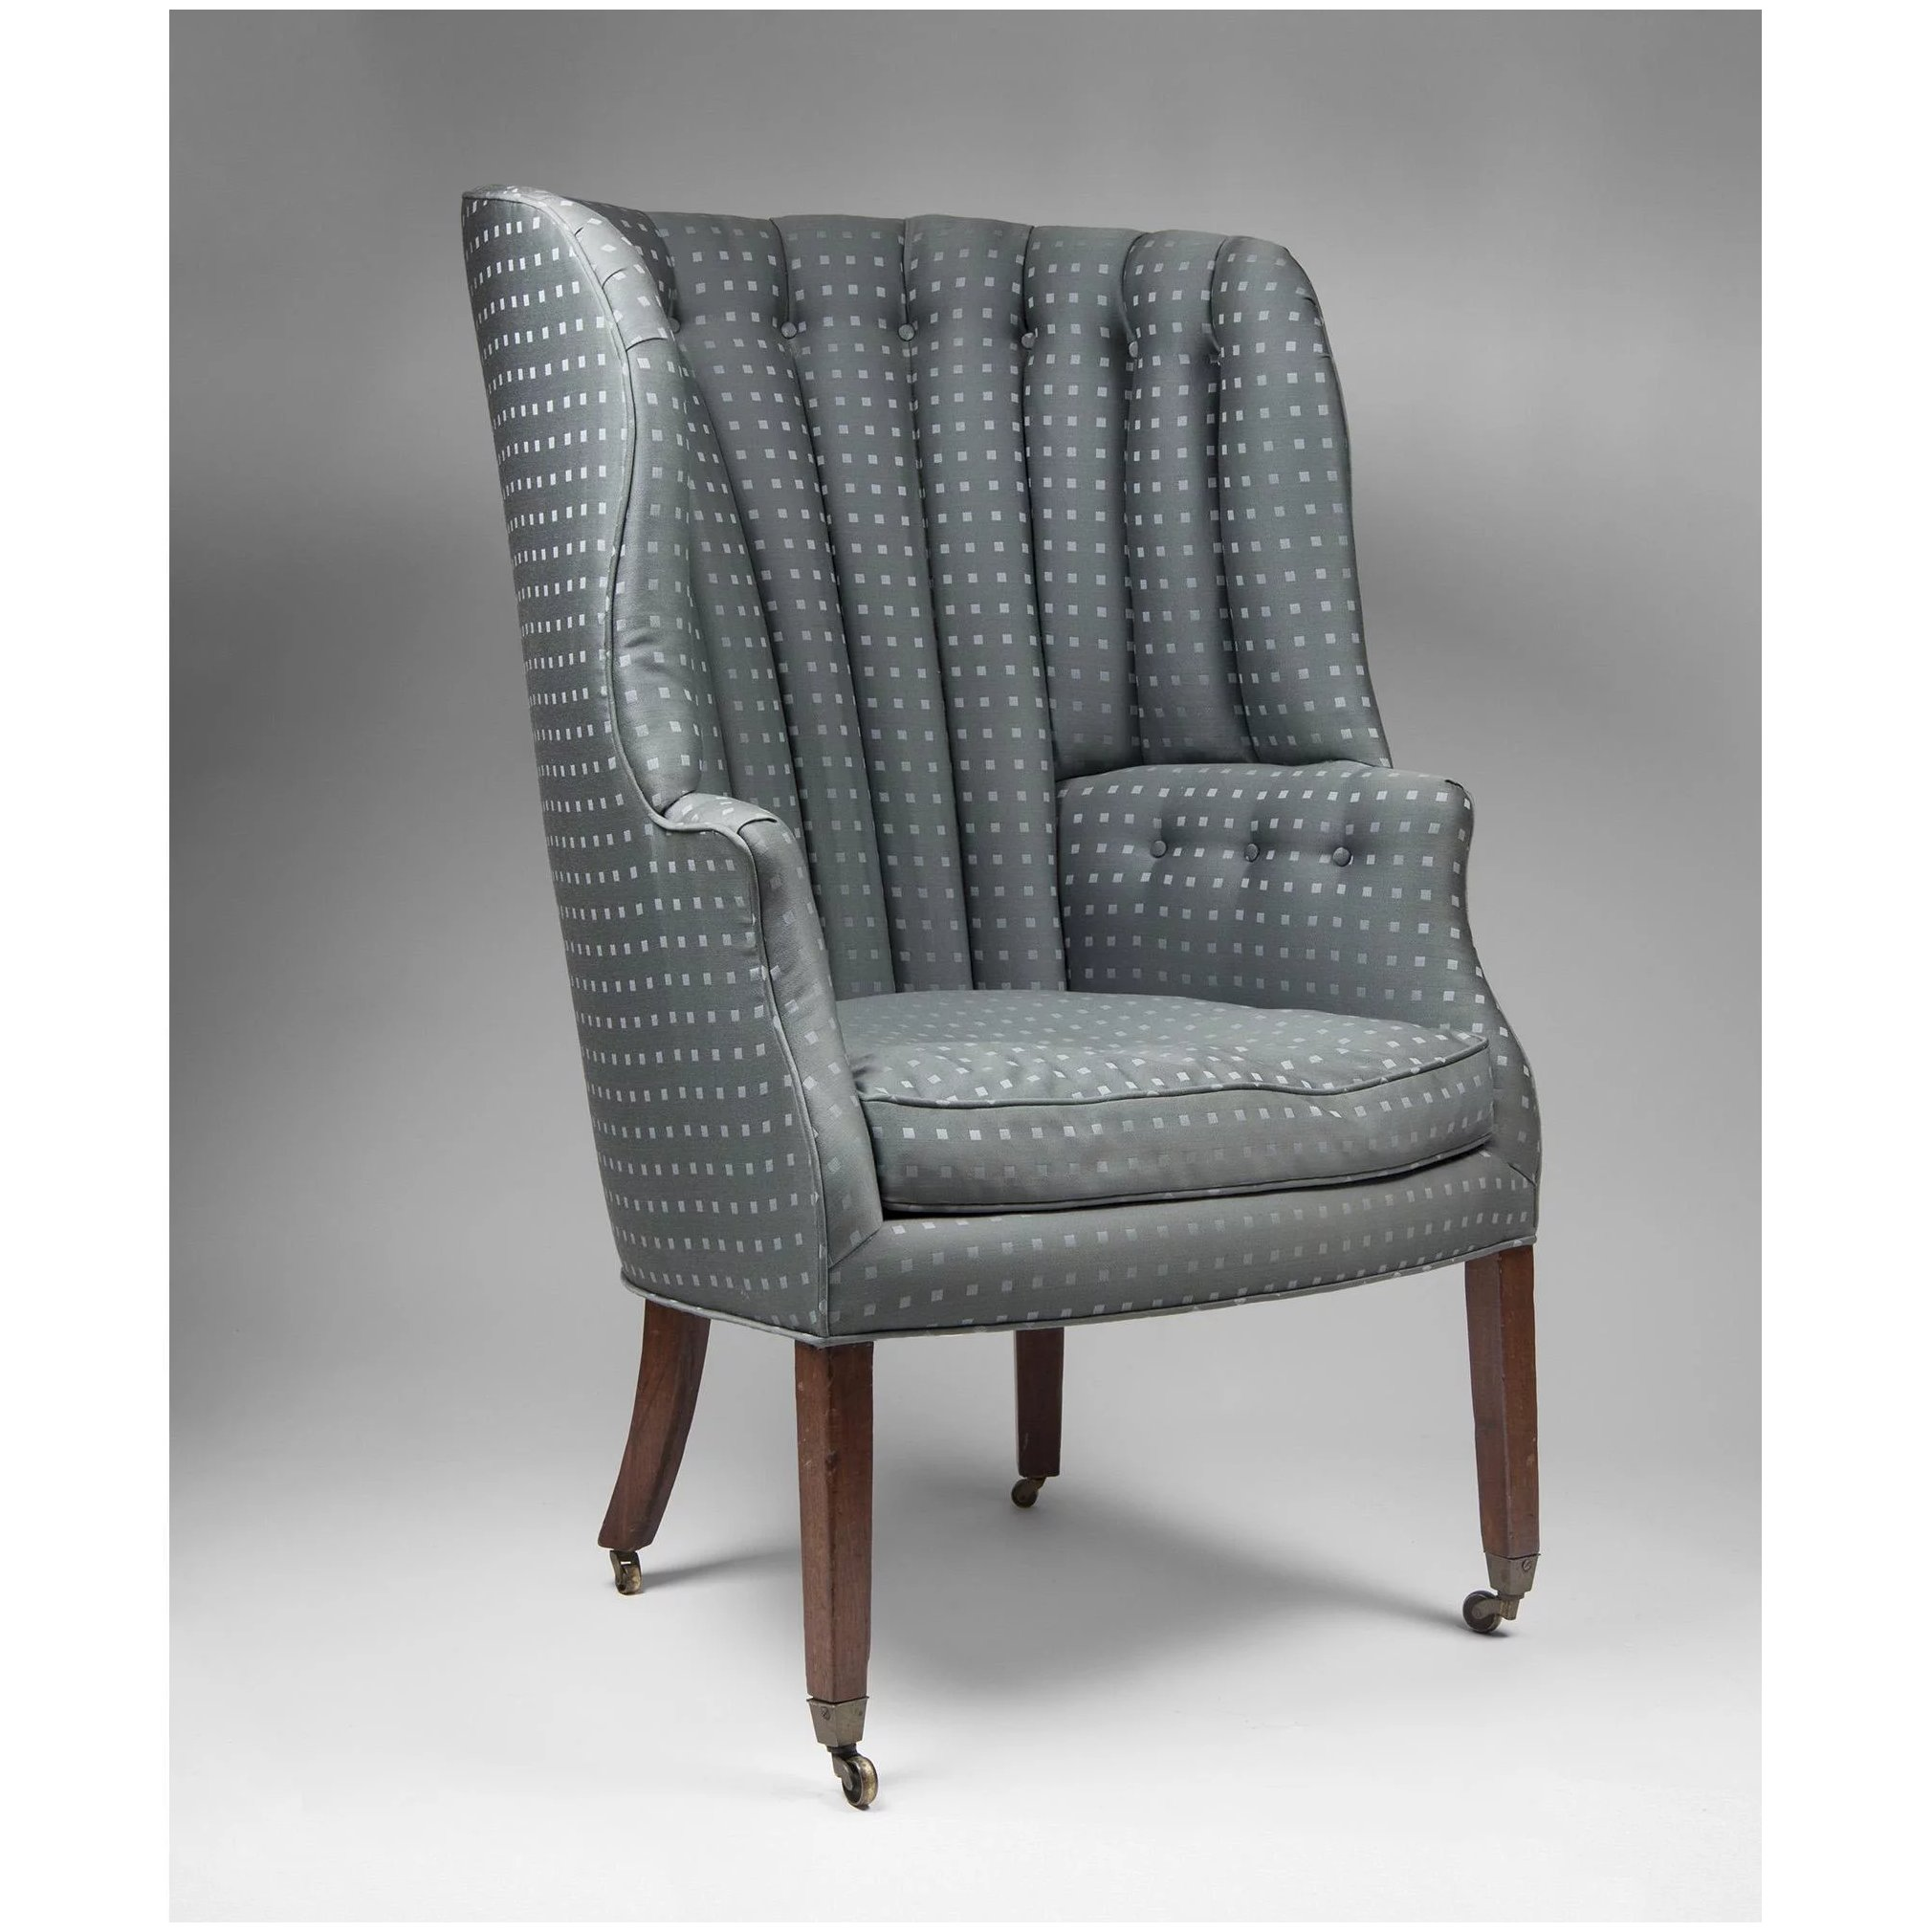 19th C English Georgian Barrel Back Library Wing Chair Pia S Antique Gallery Ruby Lane